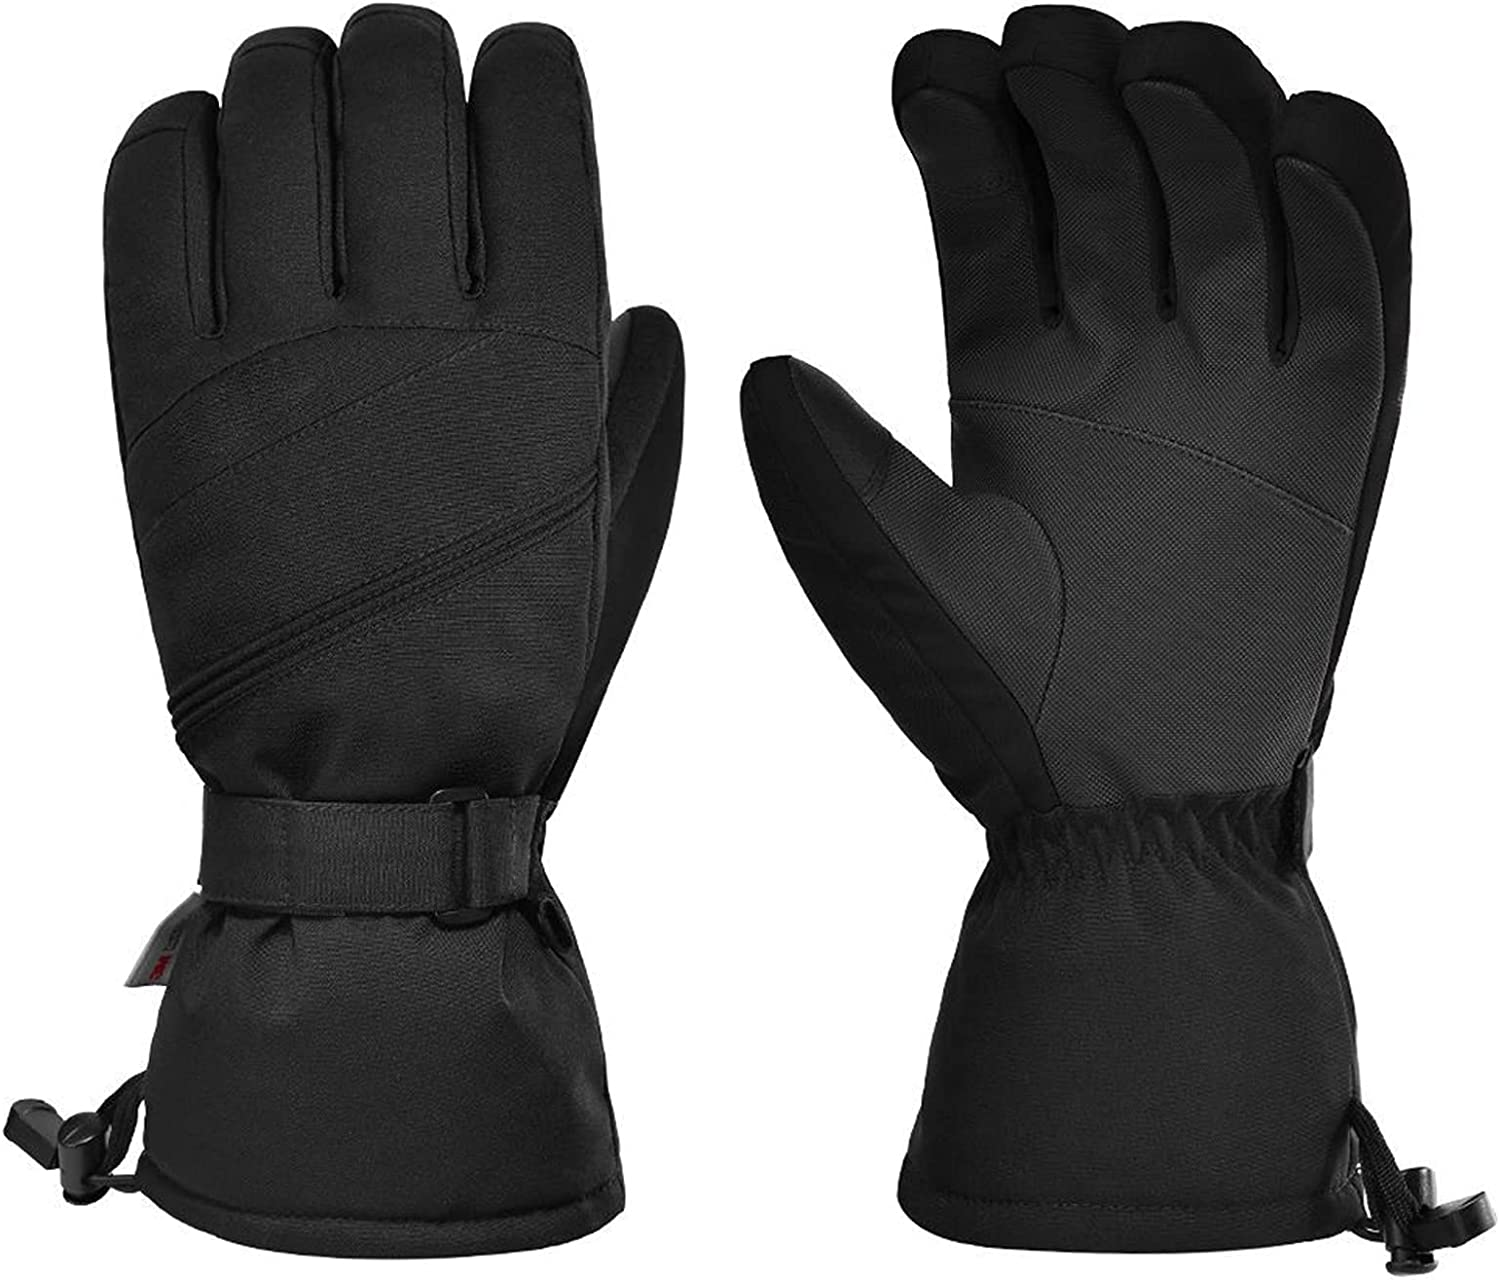 OhhGo Unisex Men Women Winter Ski Gloves Outdoor Water- and Wind- proof Touch Screen Soft Gloves for Skiing Camping Riding